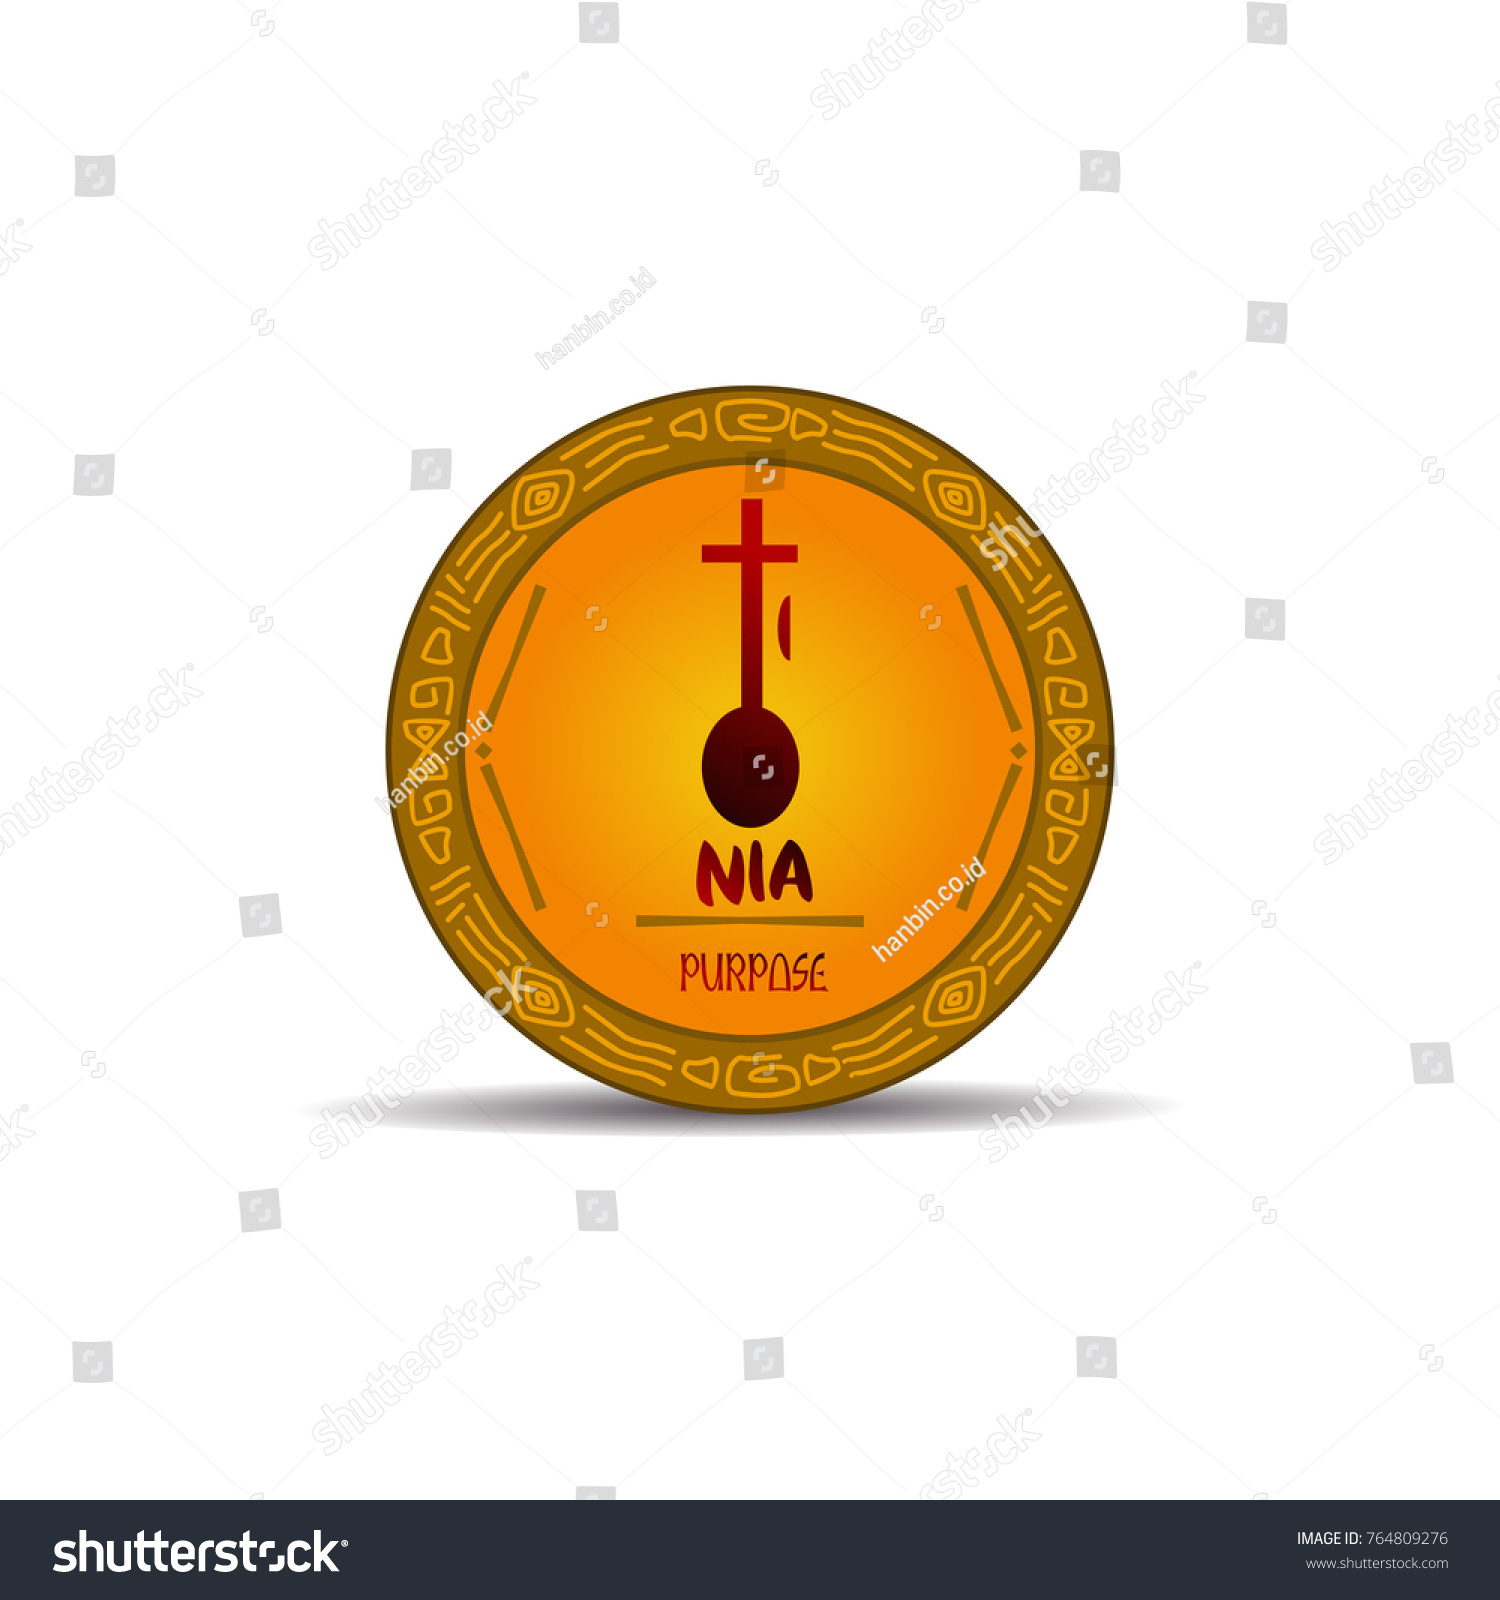 Powerful Nia – Building Confidence Is Our Purpose